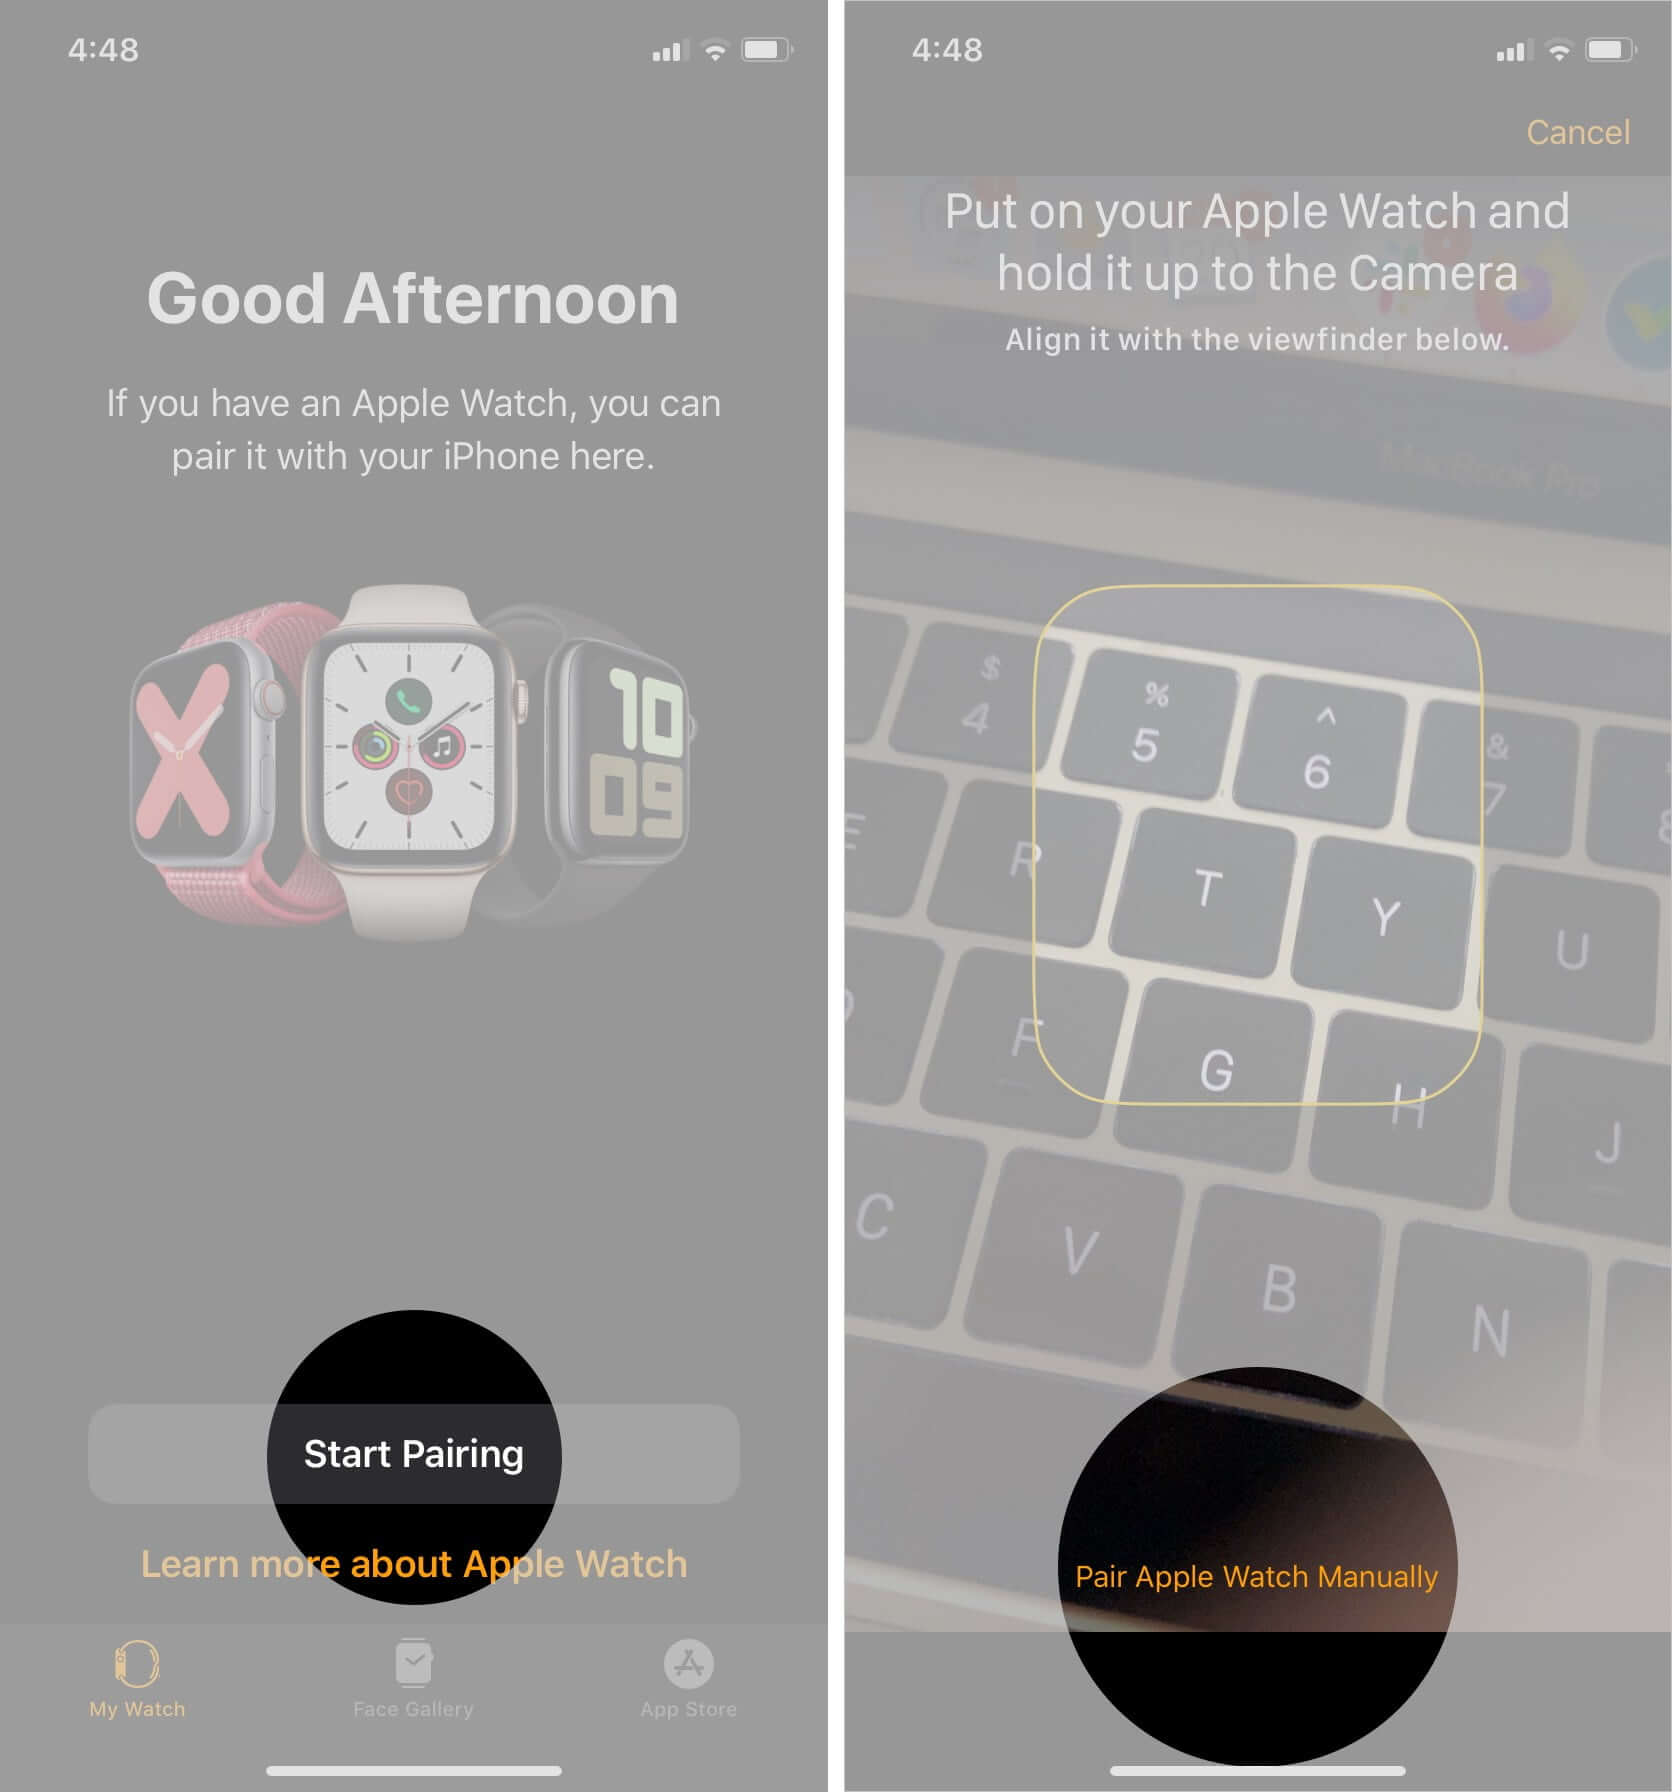 Tap on Start Pairing and Pair Apple Watch Manually